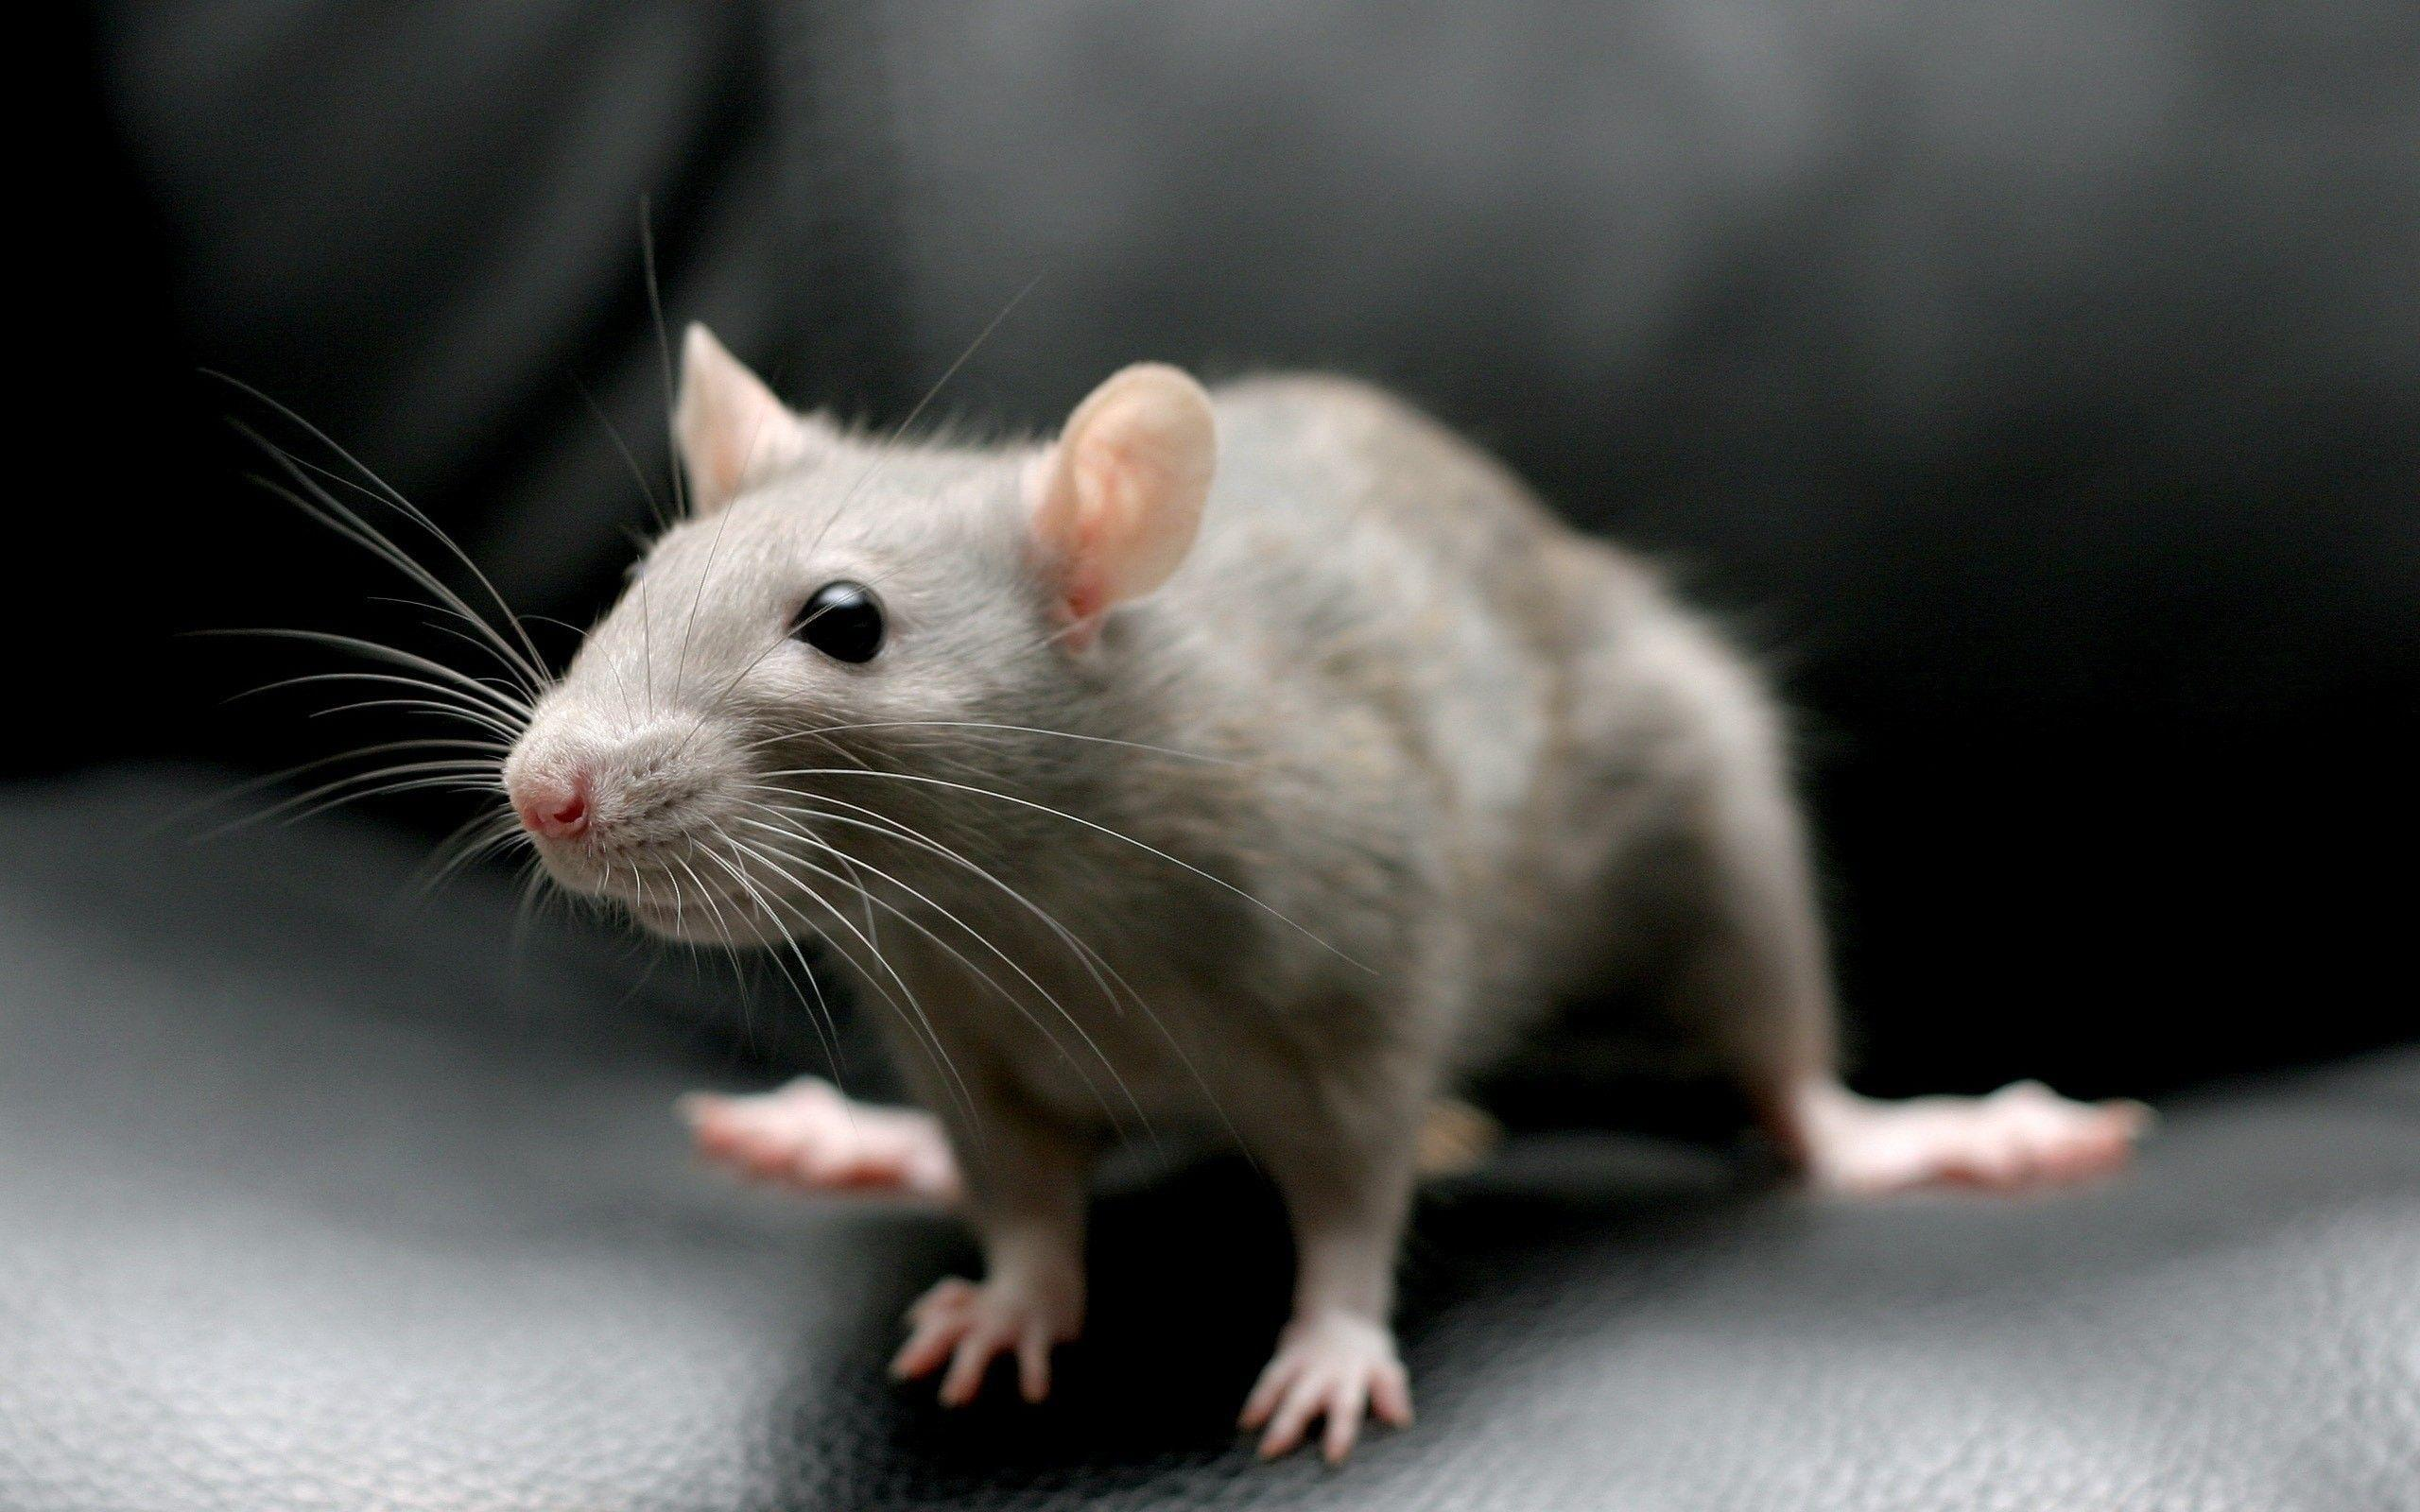 Rat Wallpaper (53+ images)